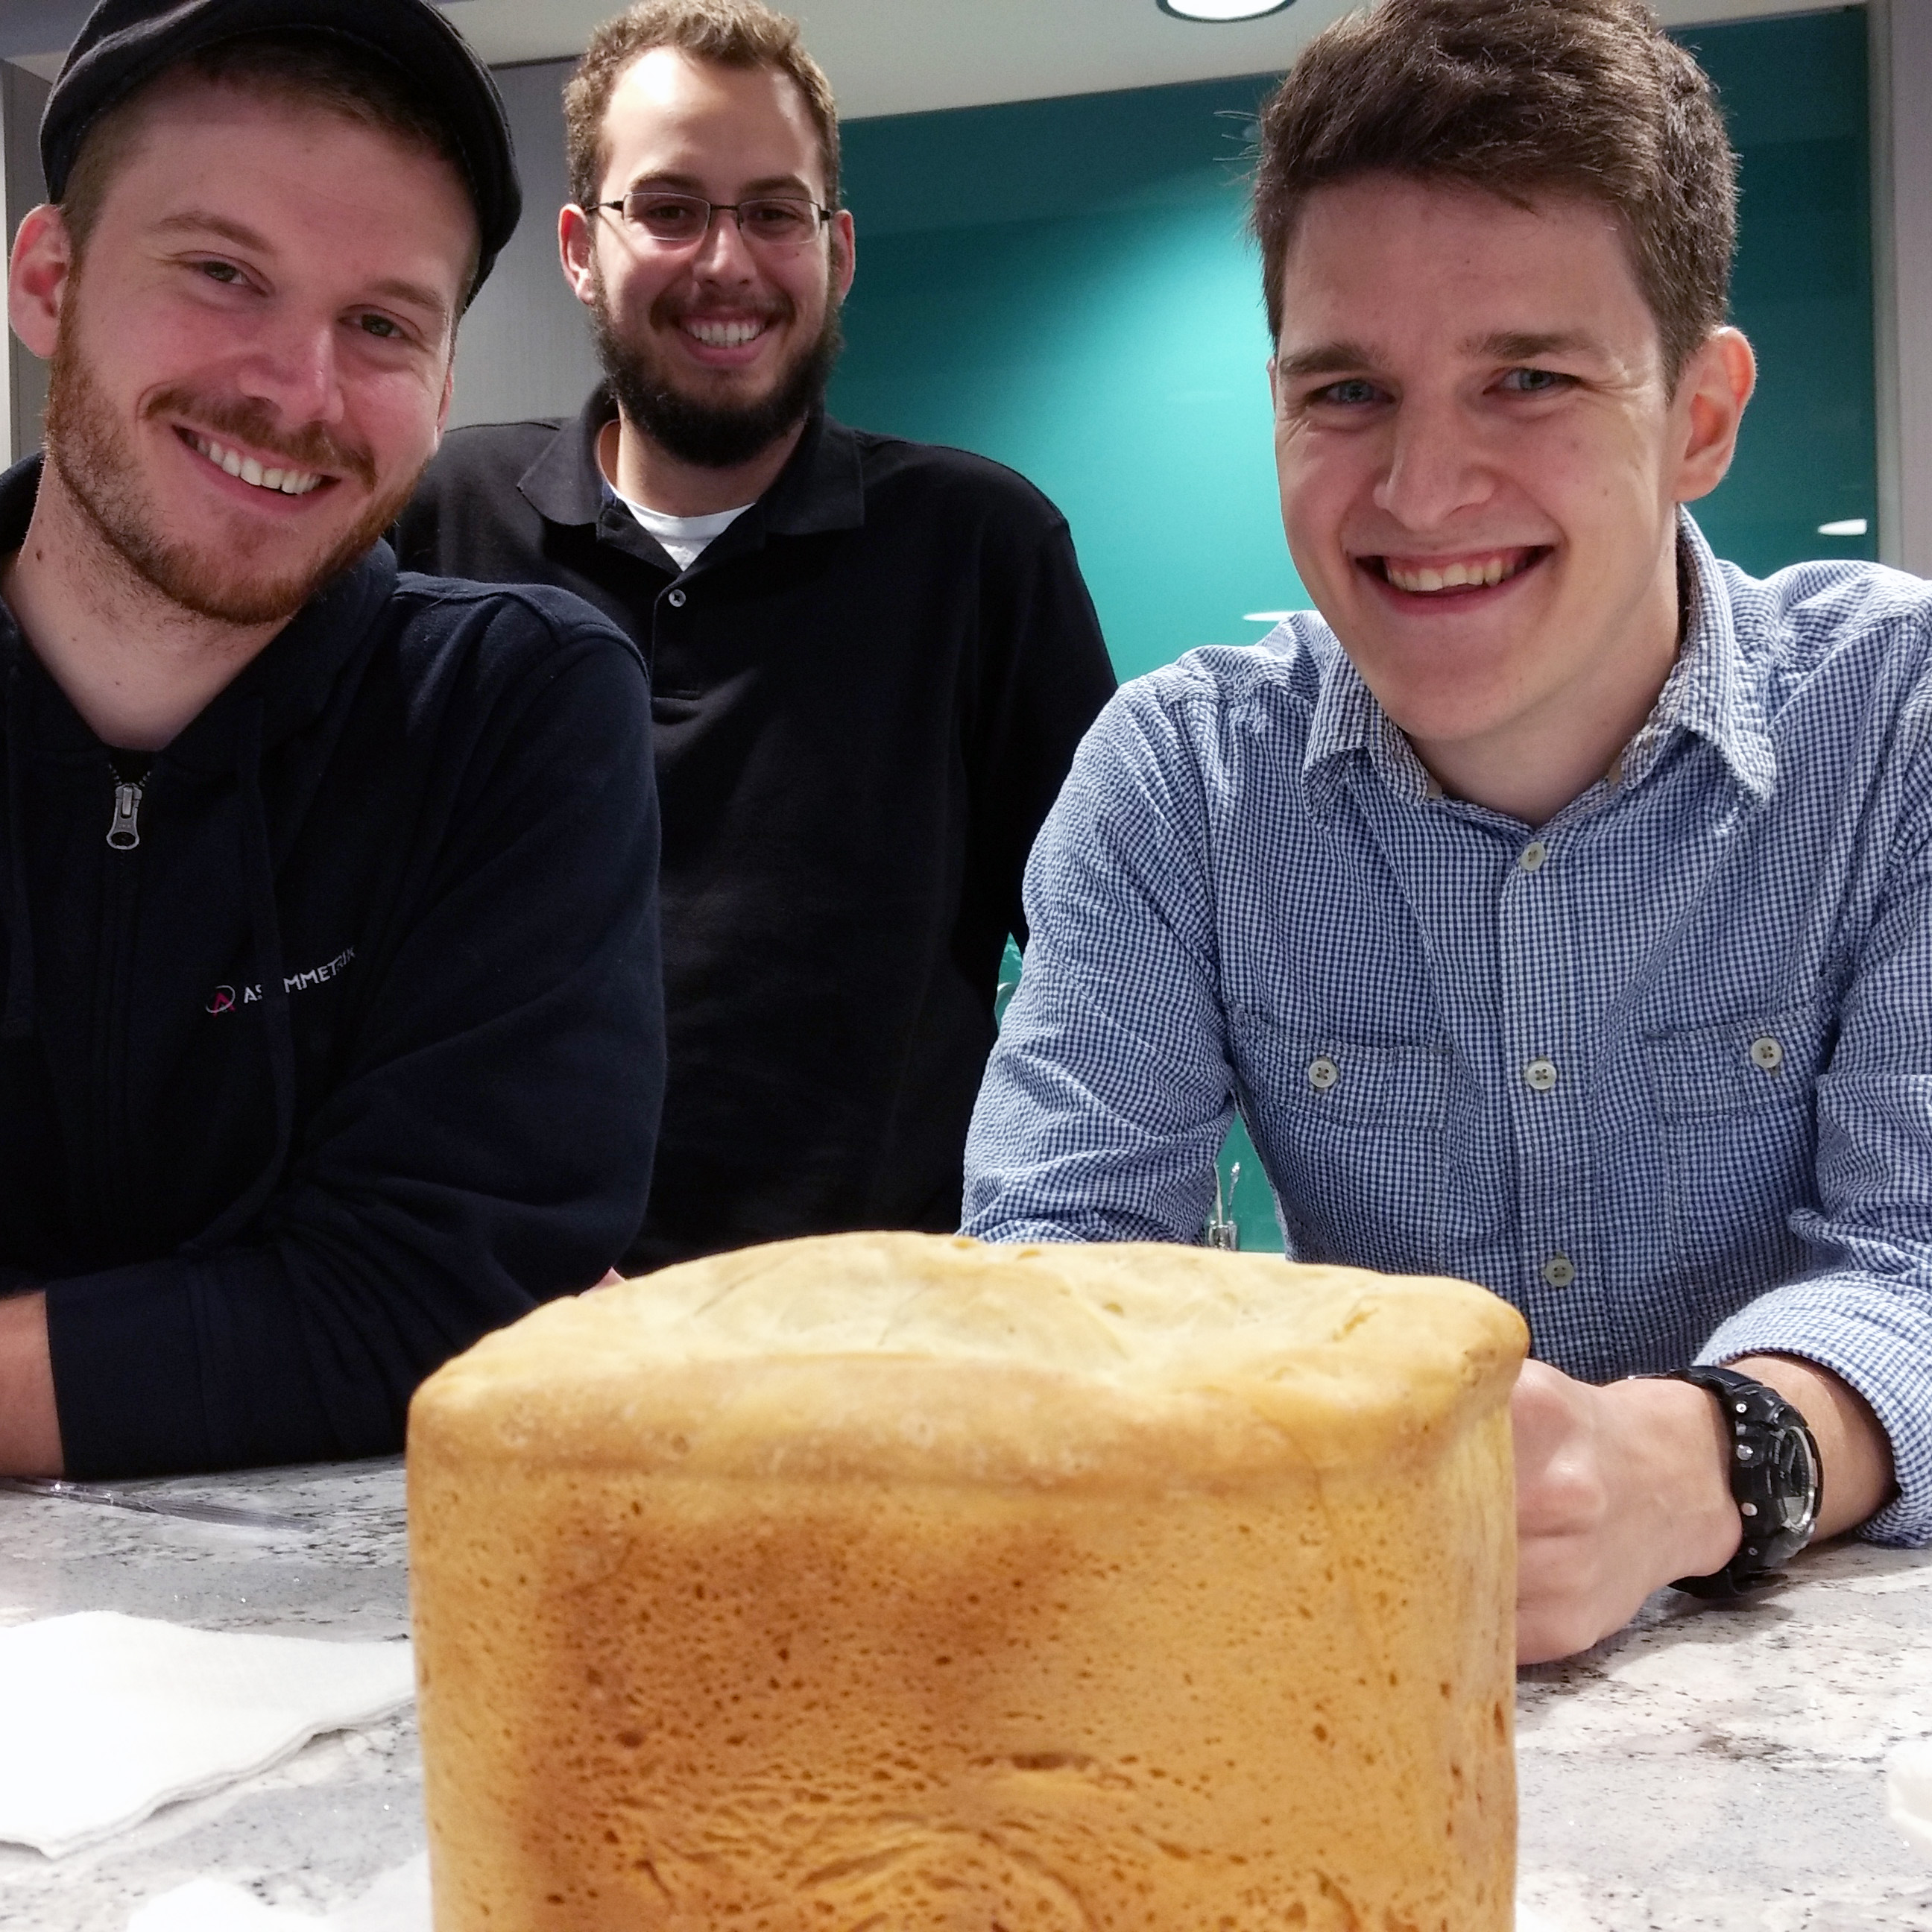 Three Men with loaf of bread in office kitchen